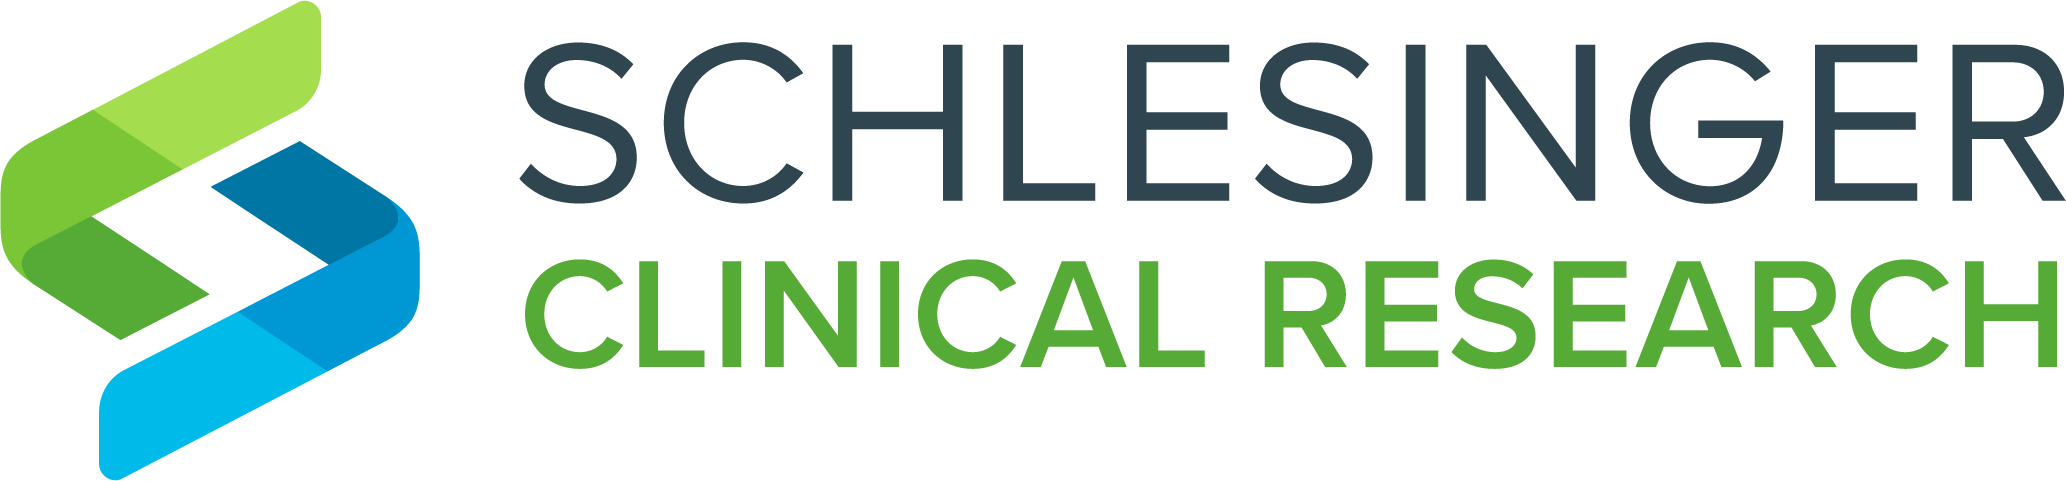 Schlesinger Clinical Research